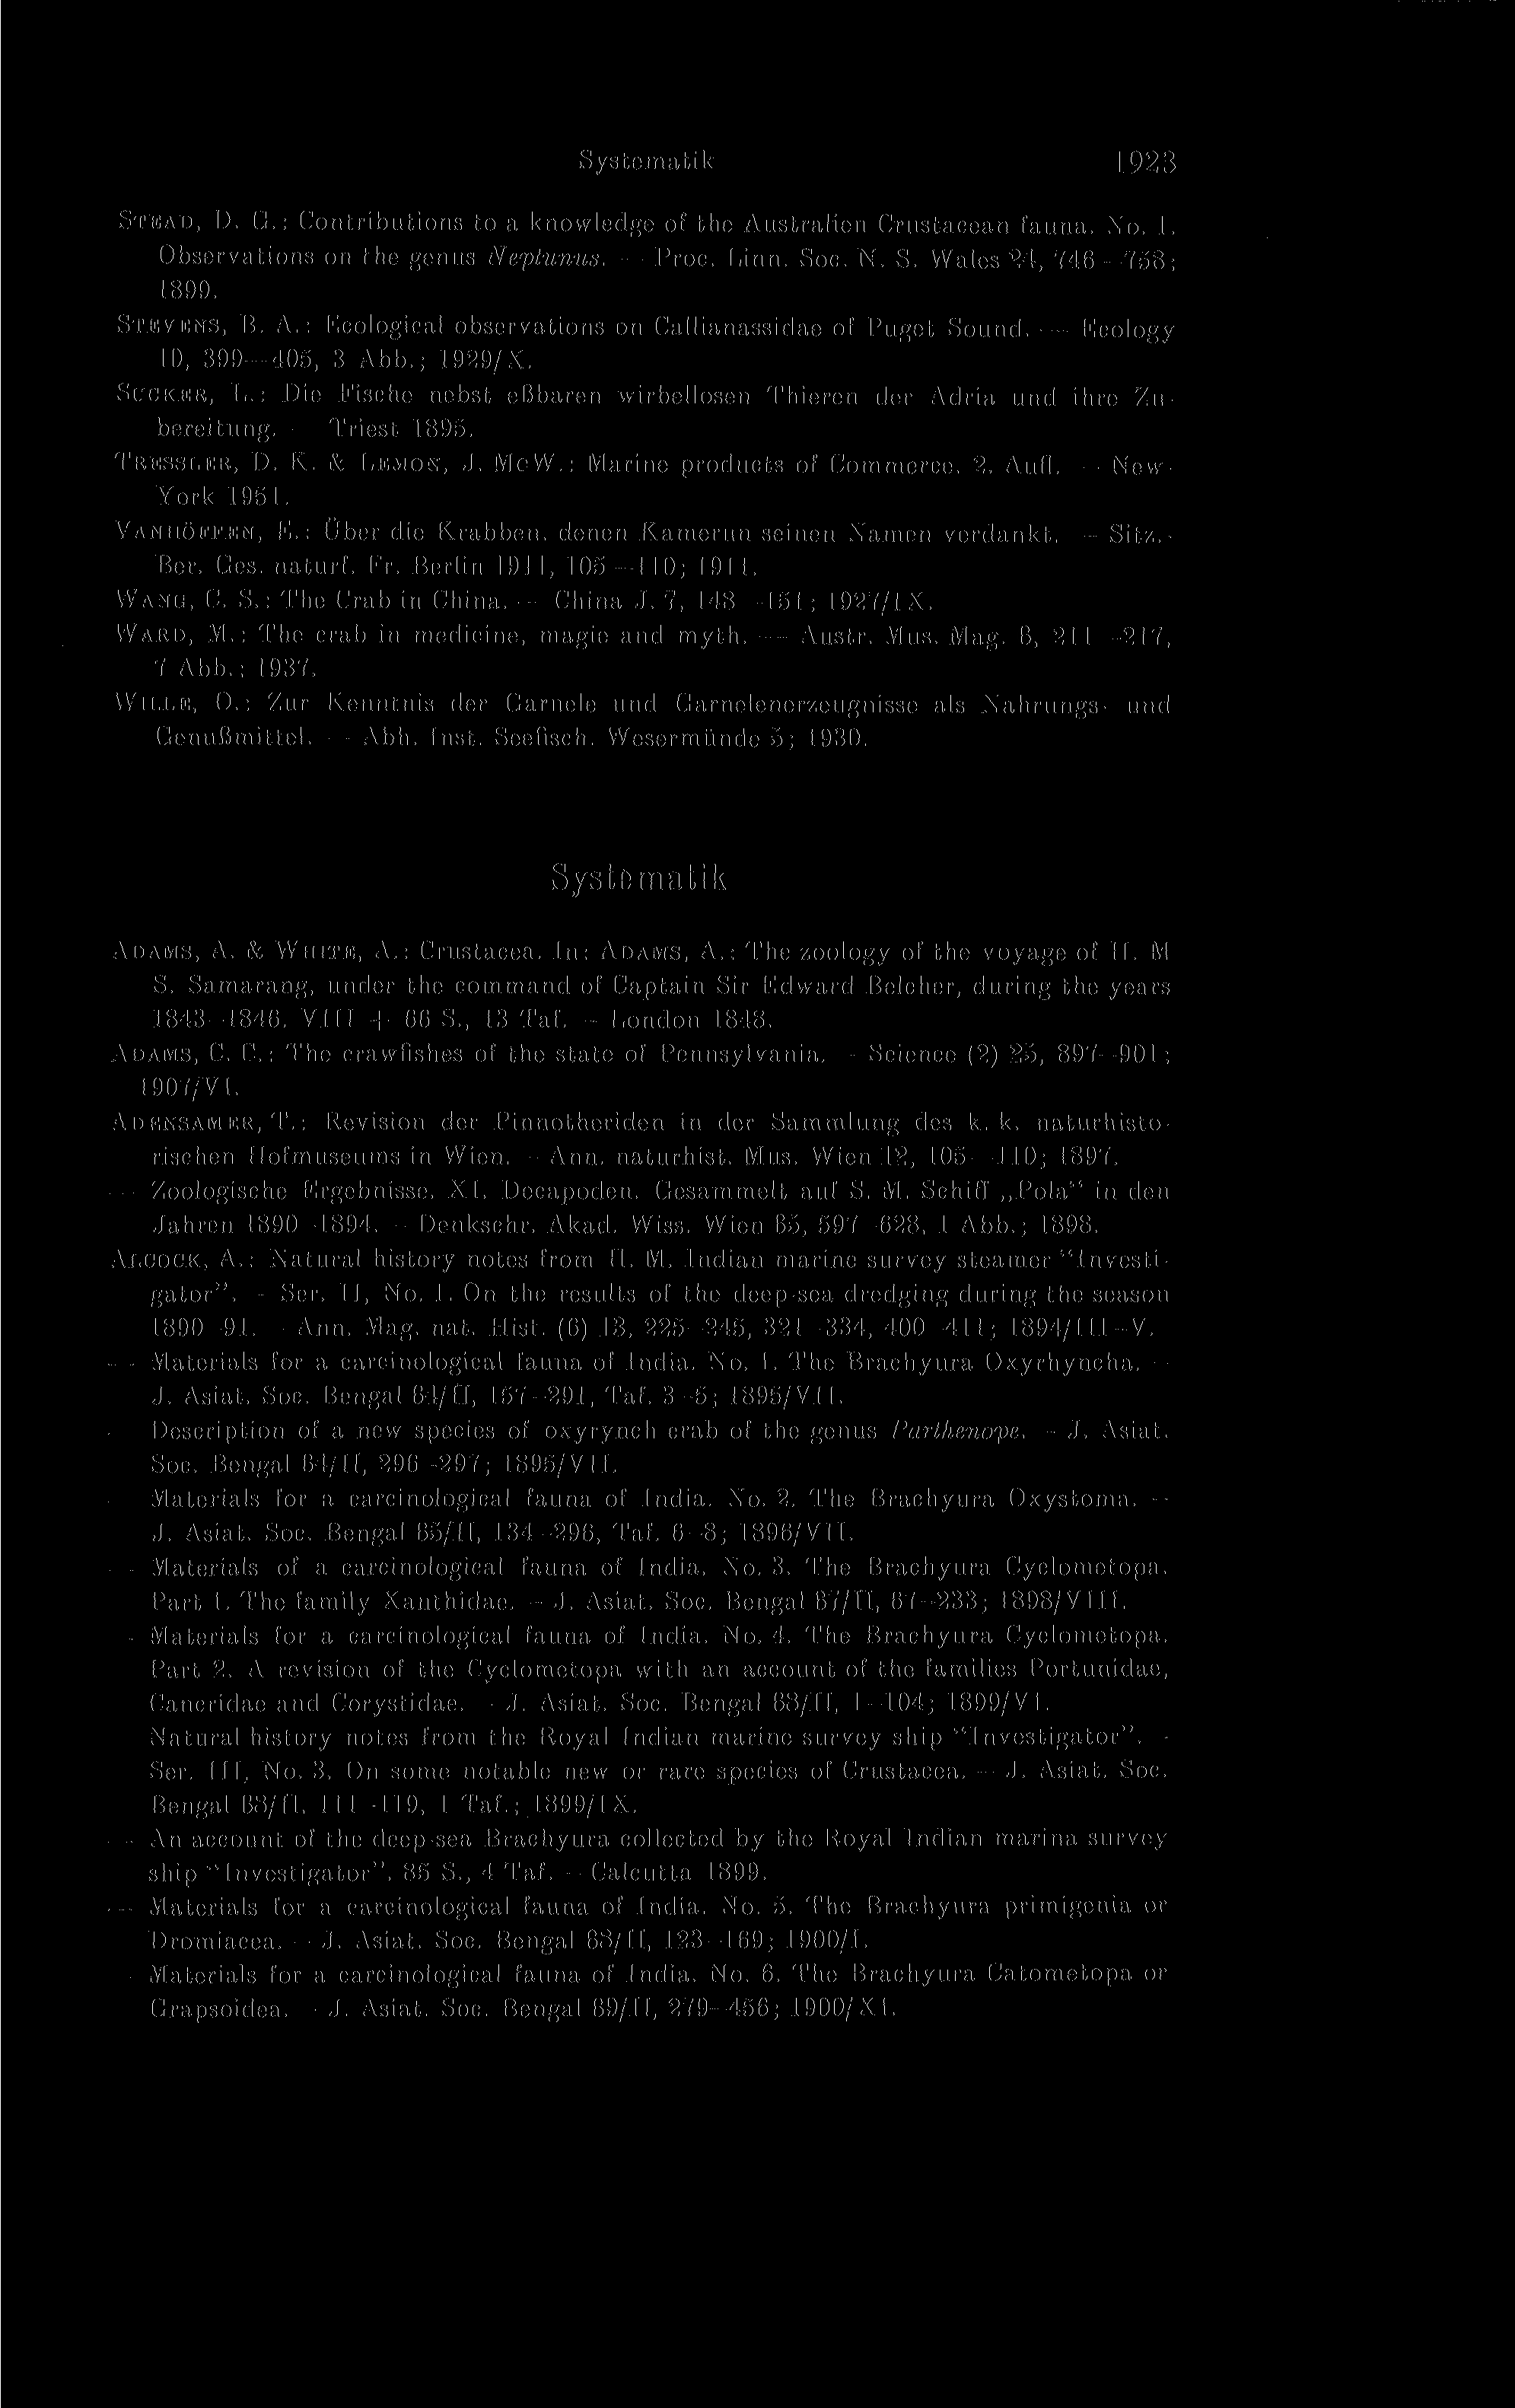 Systematik 1923 Systematik STEAD, D. G.: Contributions to a knowledge of the Australien Crustacean fauna. No. 1. Observations on the genus Neptunus. Proc. Linn. Soc. N. S. Wales 24, 746- -758; 1899.